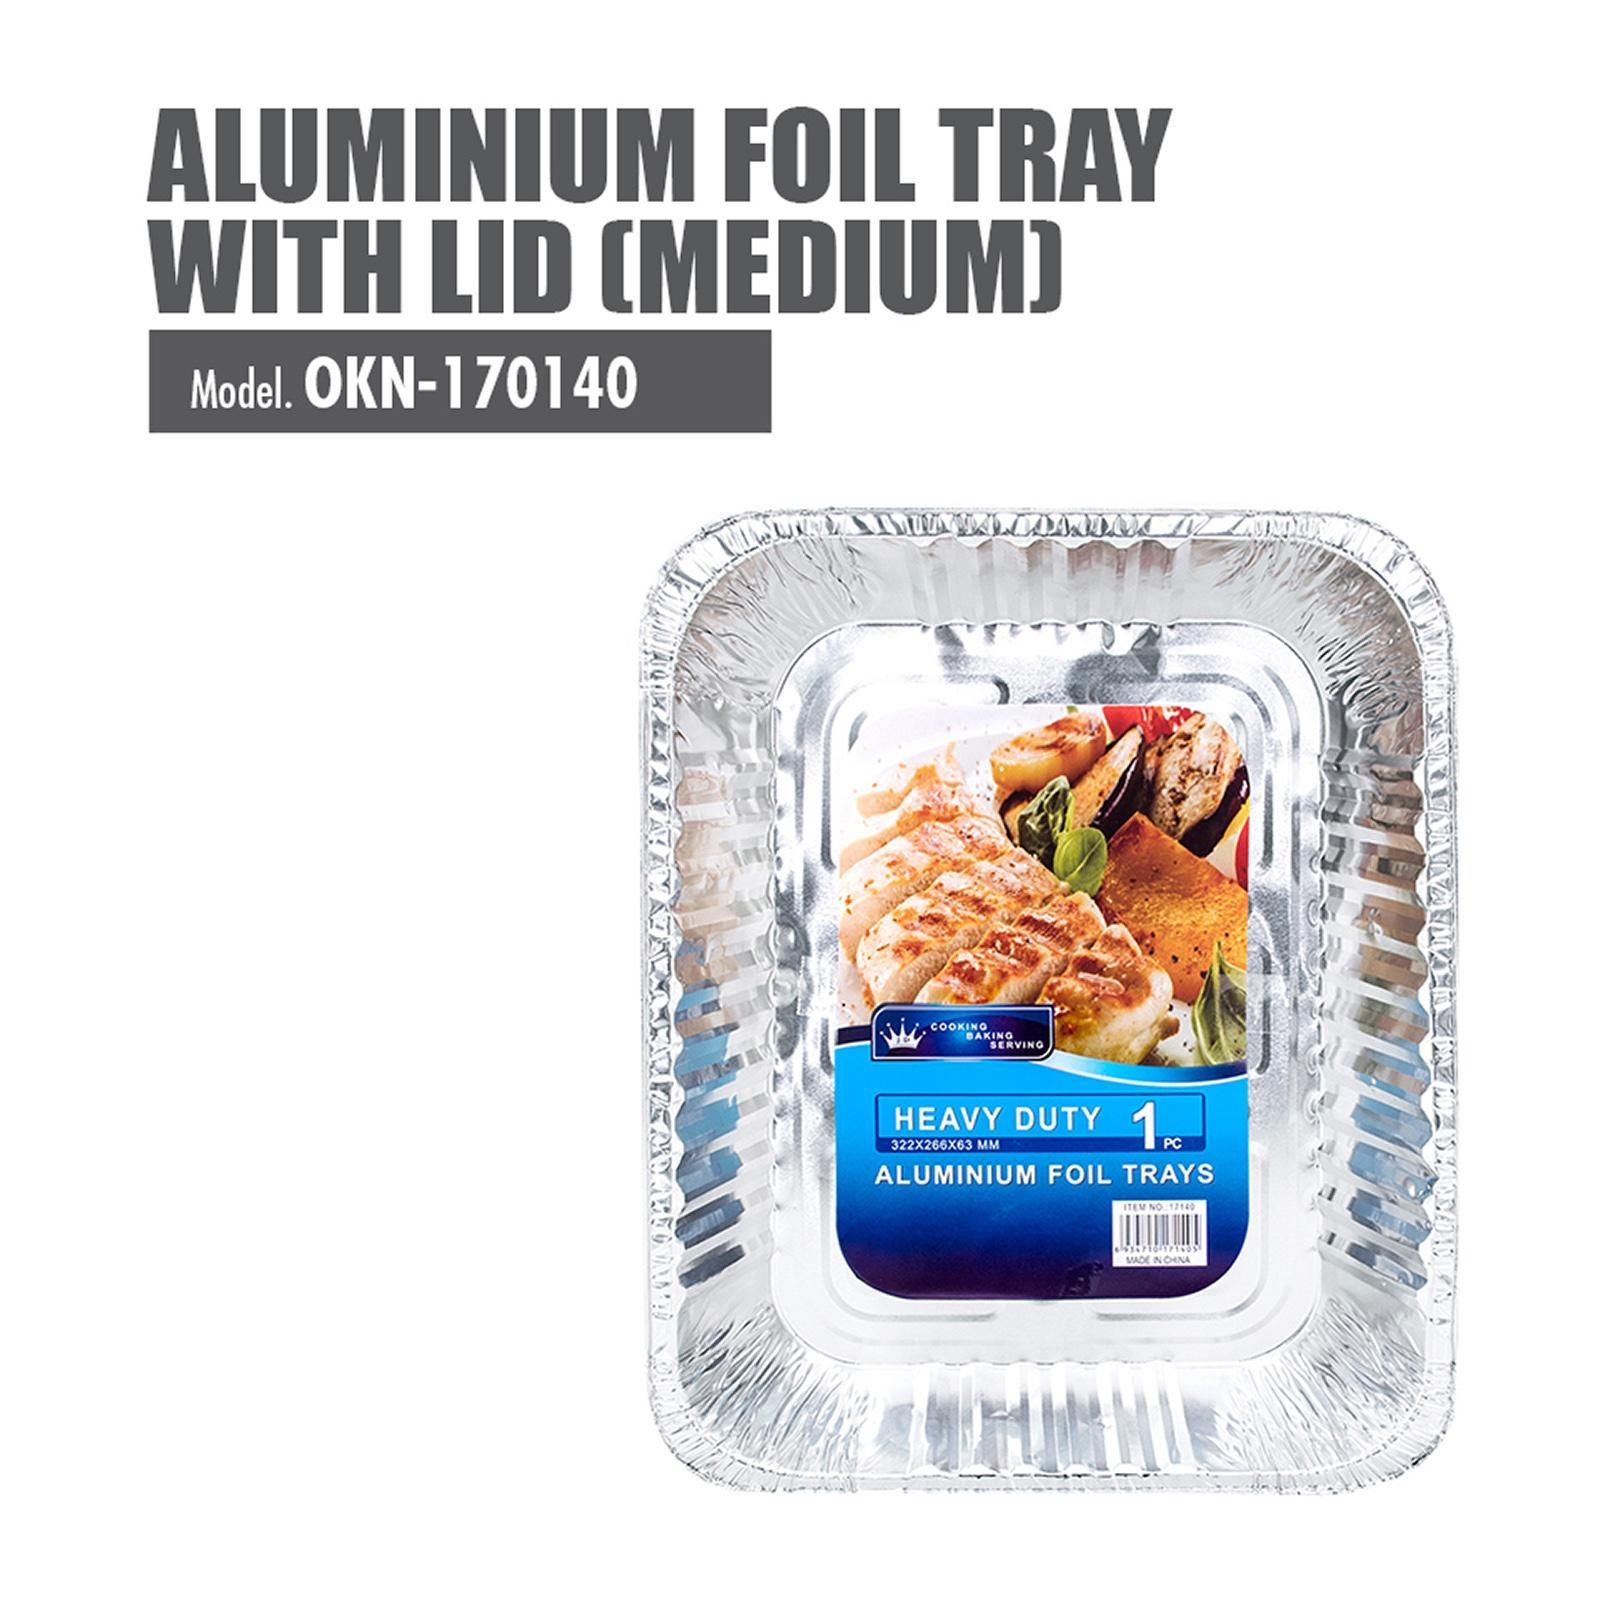 HOUZE Medium Aluminium Foil Tray With Lid - 322X266X63MM